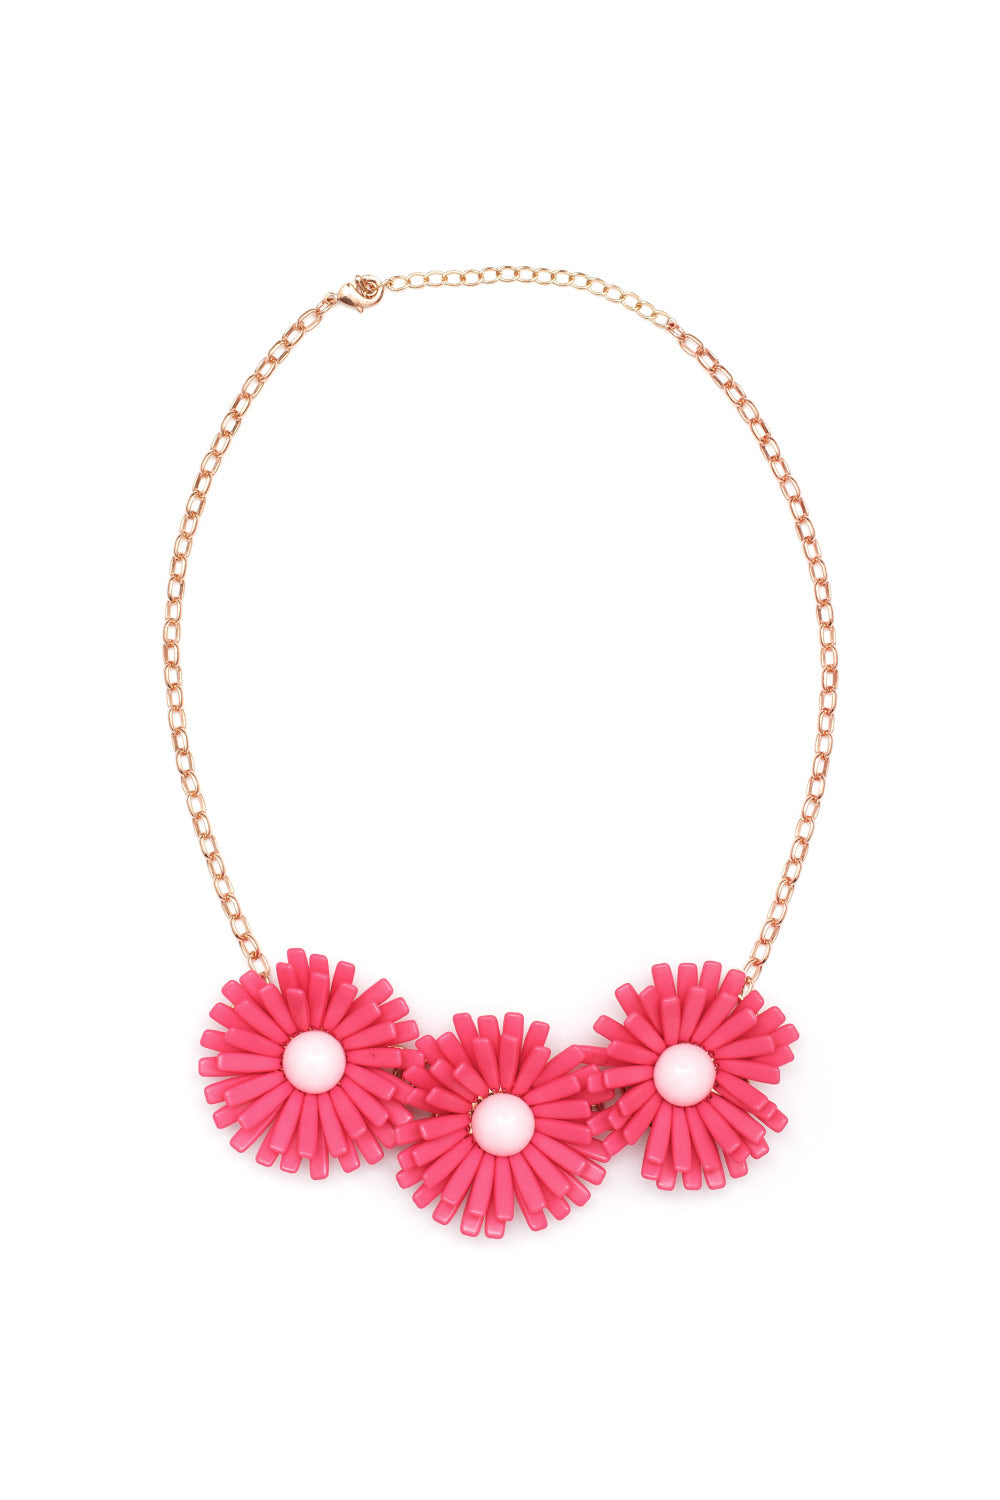 Type 1 Playful Petals Necklace